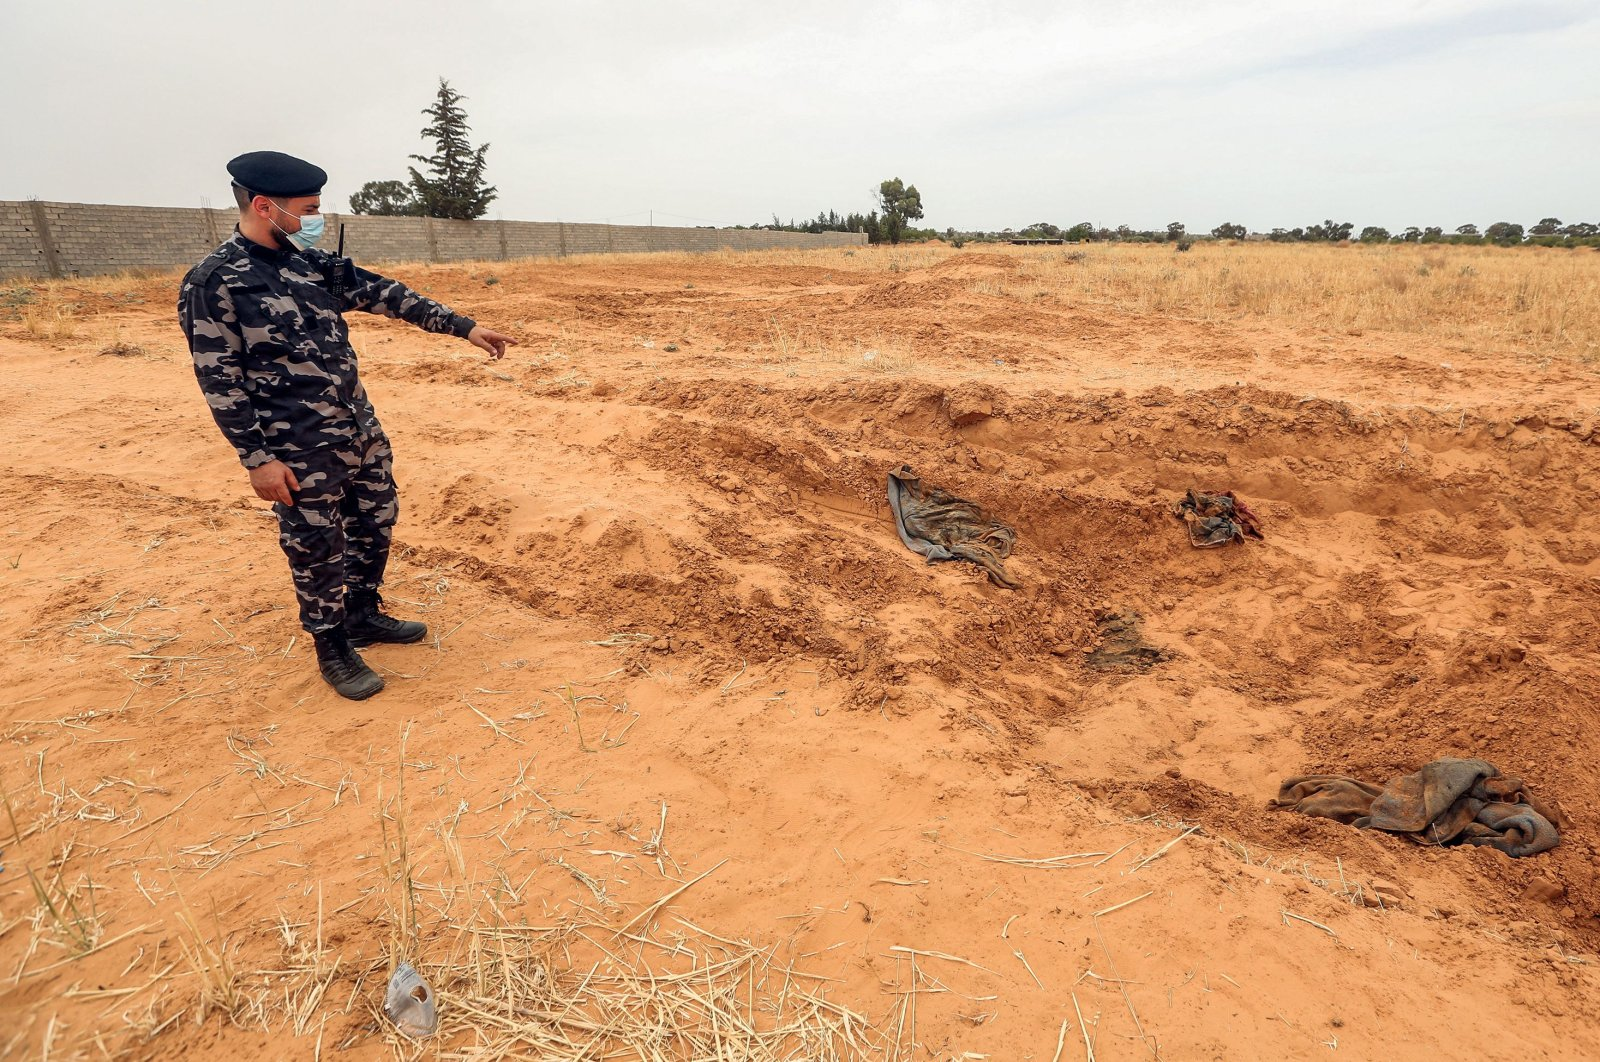 A member of security forces affiliated with the Libyan Government of National Accord (GNA)'s Interior Ministry stands at the reported site of a mass grave in the town of Tarhuna, June 11, 2020. (AFP Photo)